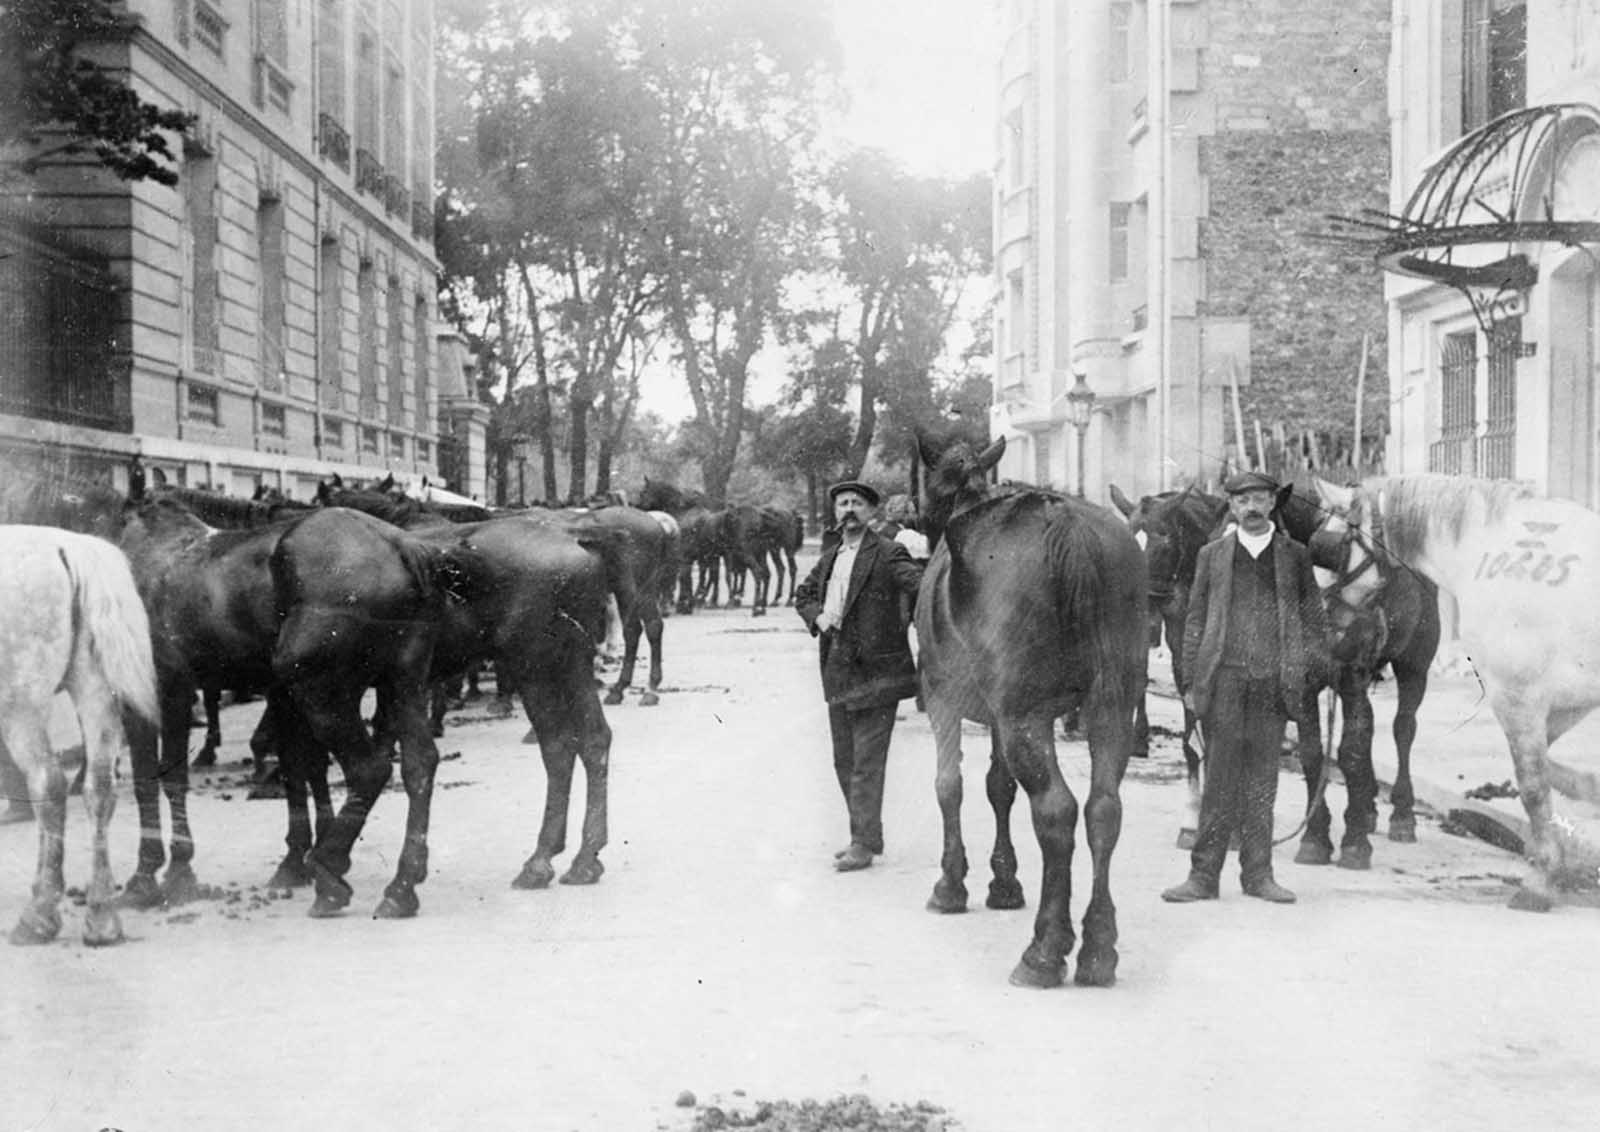 Horses requisitioned for the war effort in Paris, France, ca. 1915. Farmers and families on the home front endured great hardship when their best horses were taken for use in the war.